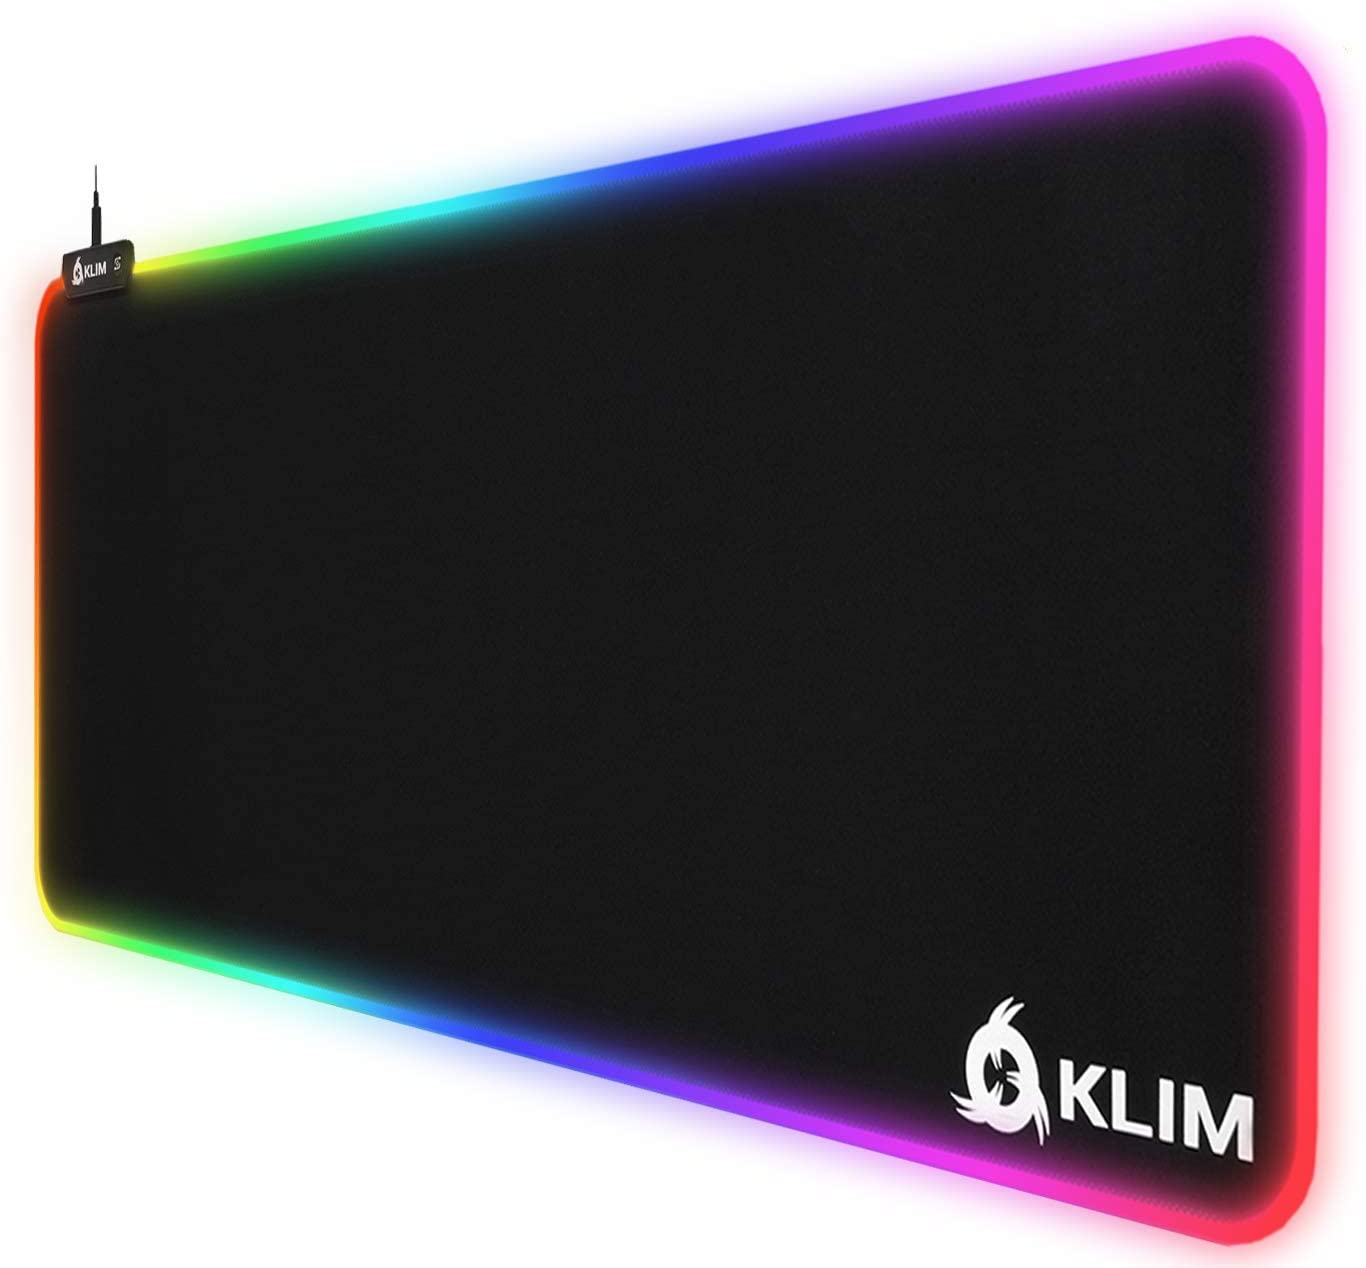 gift ⭐️KLIM Beauty products Supremacy - Extra Large New Mouse Pad 202 RGB